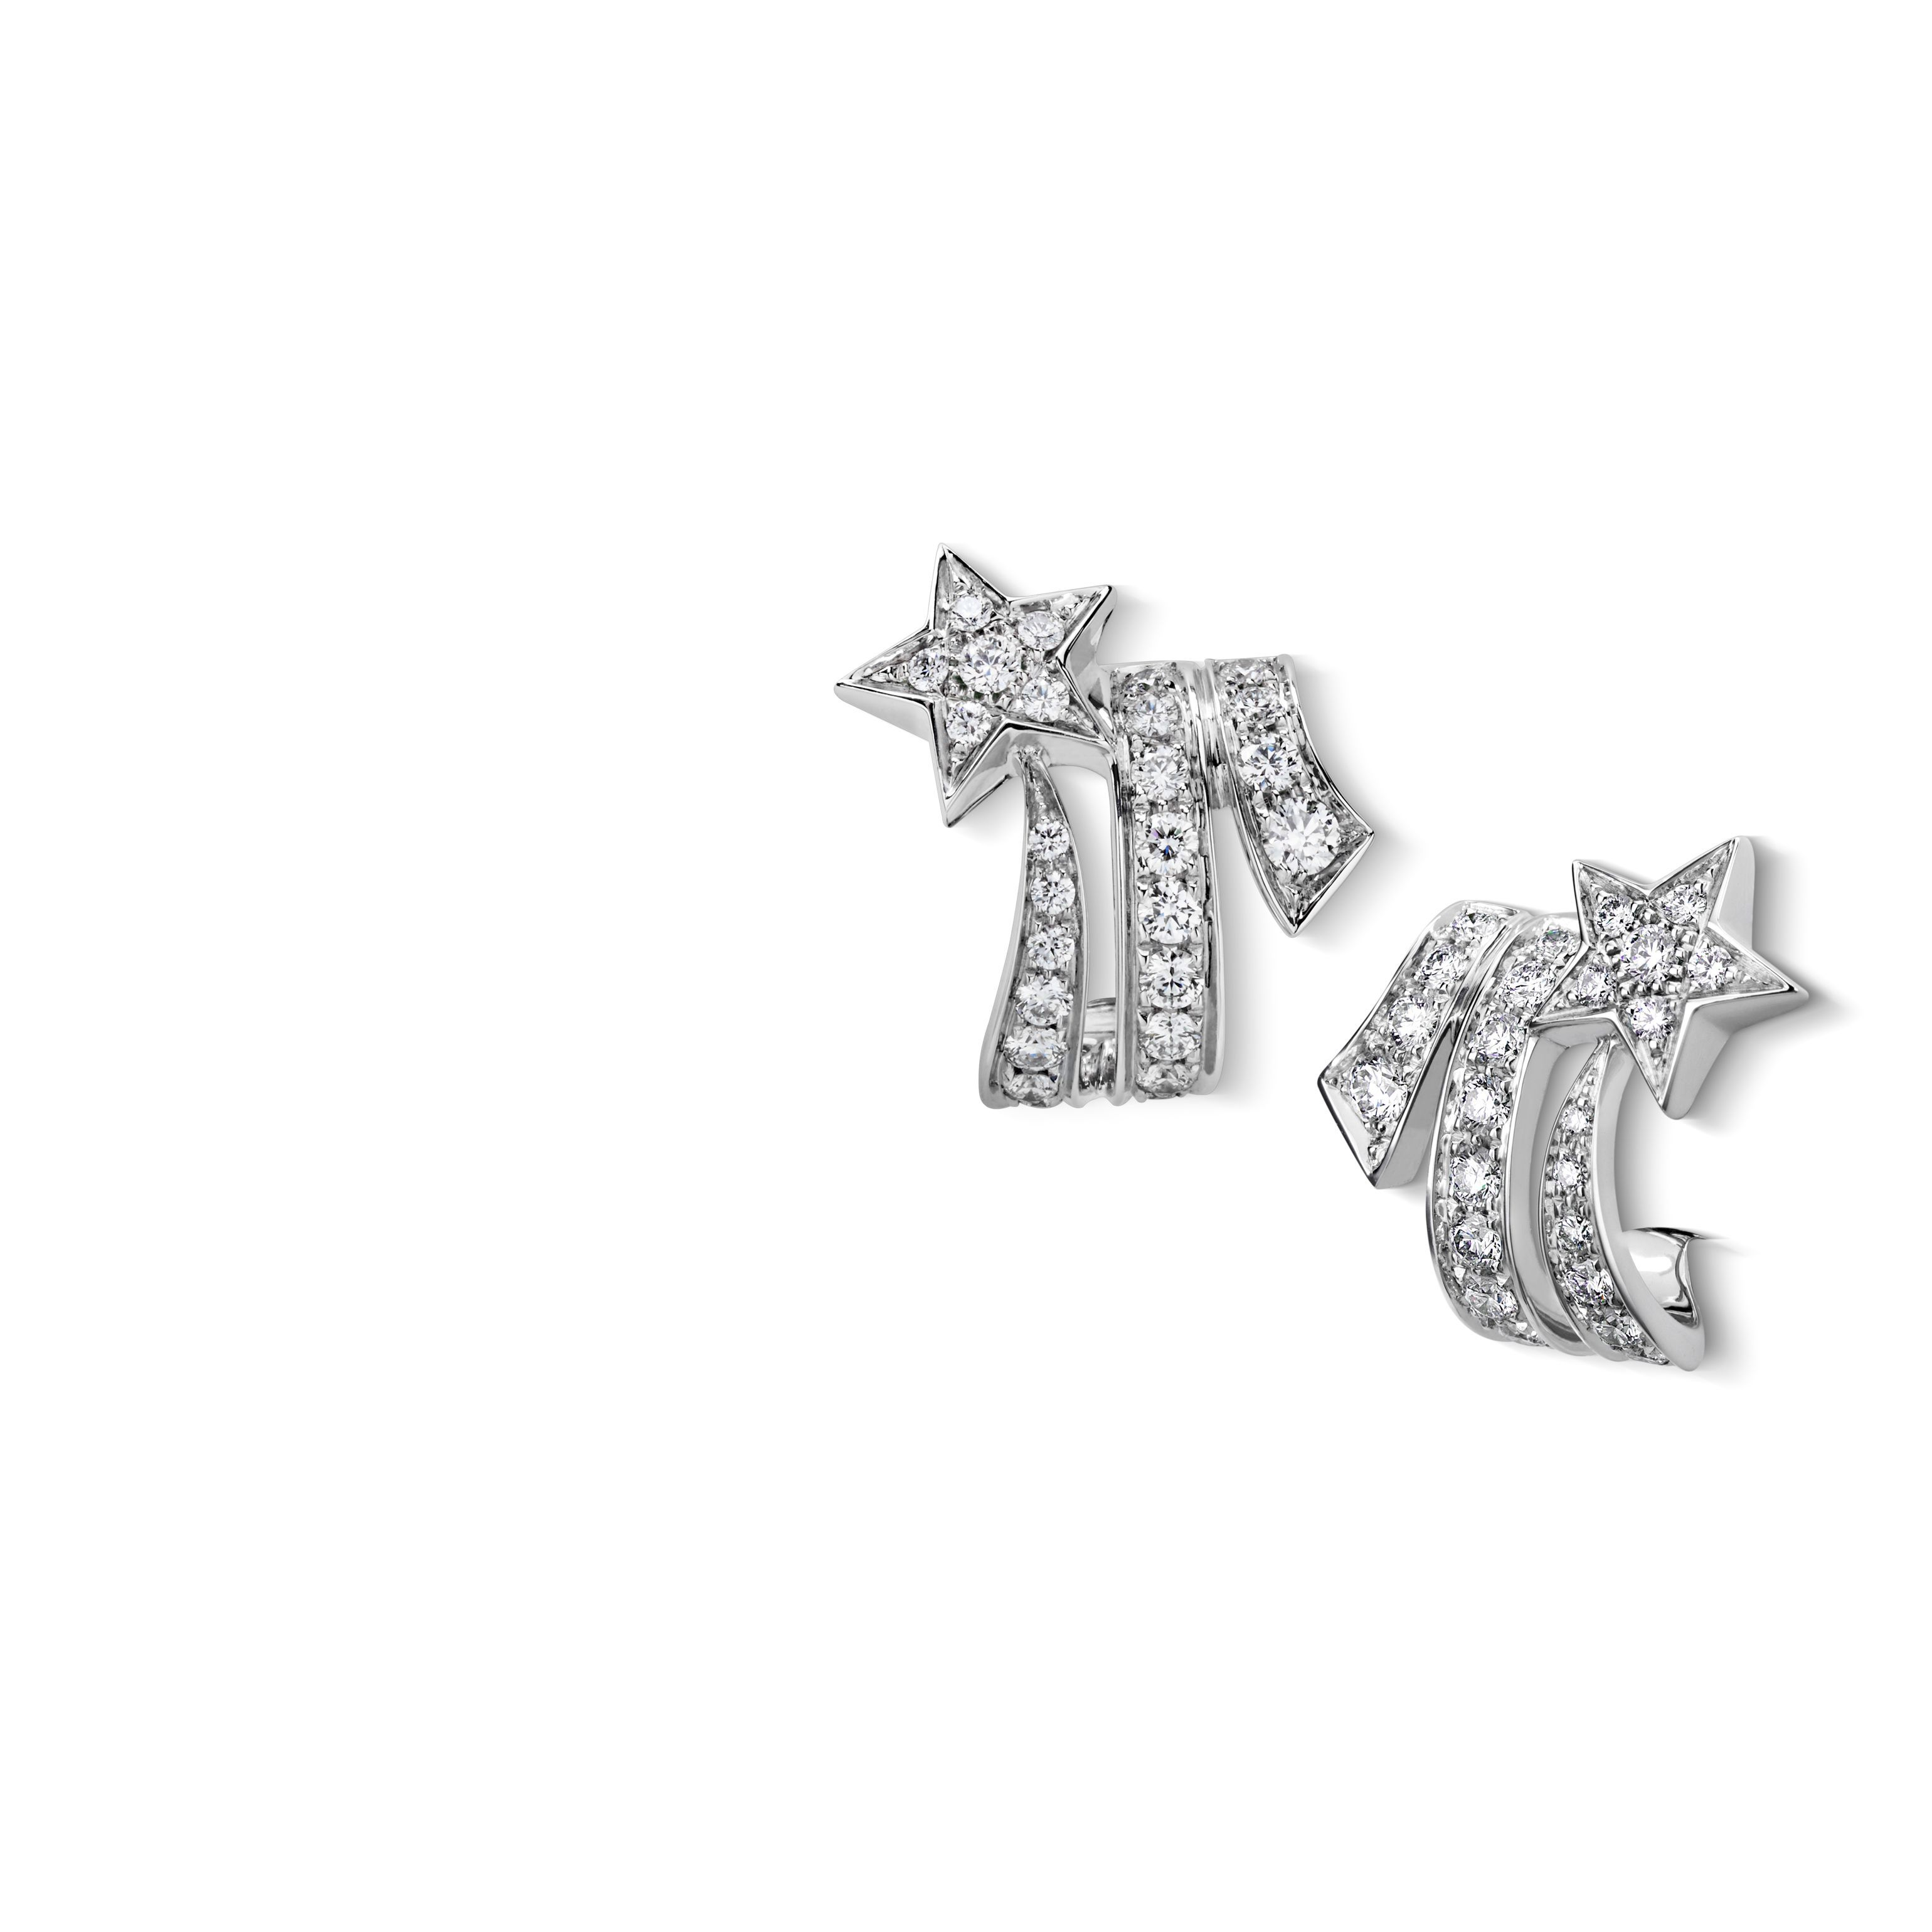 b3f92486e Comète earrings - Shooting star earrings in 18K white gold and diamonds  J10814 at the CHANEL Fine Jewelry website.